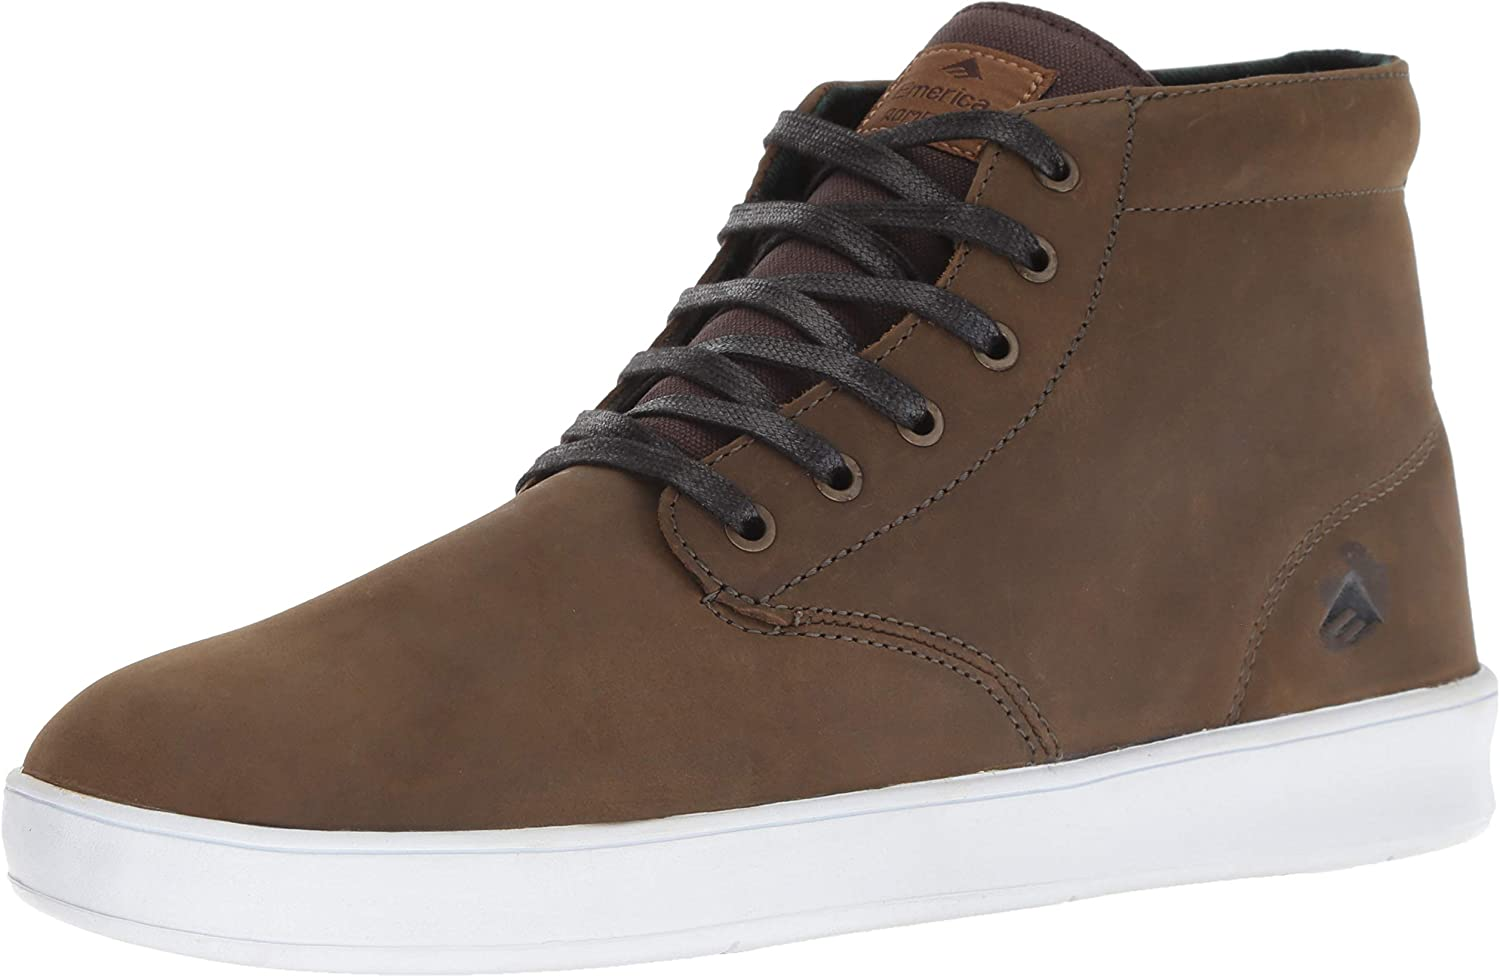 Emerica Men's Romero Laced High Skate Shoe